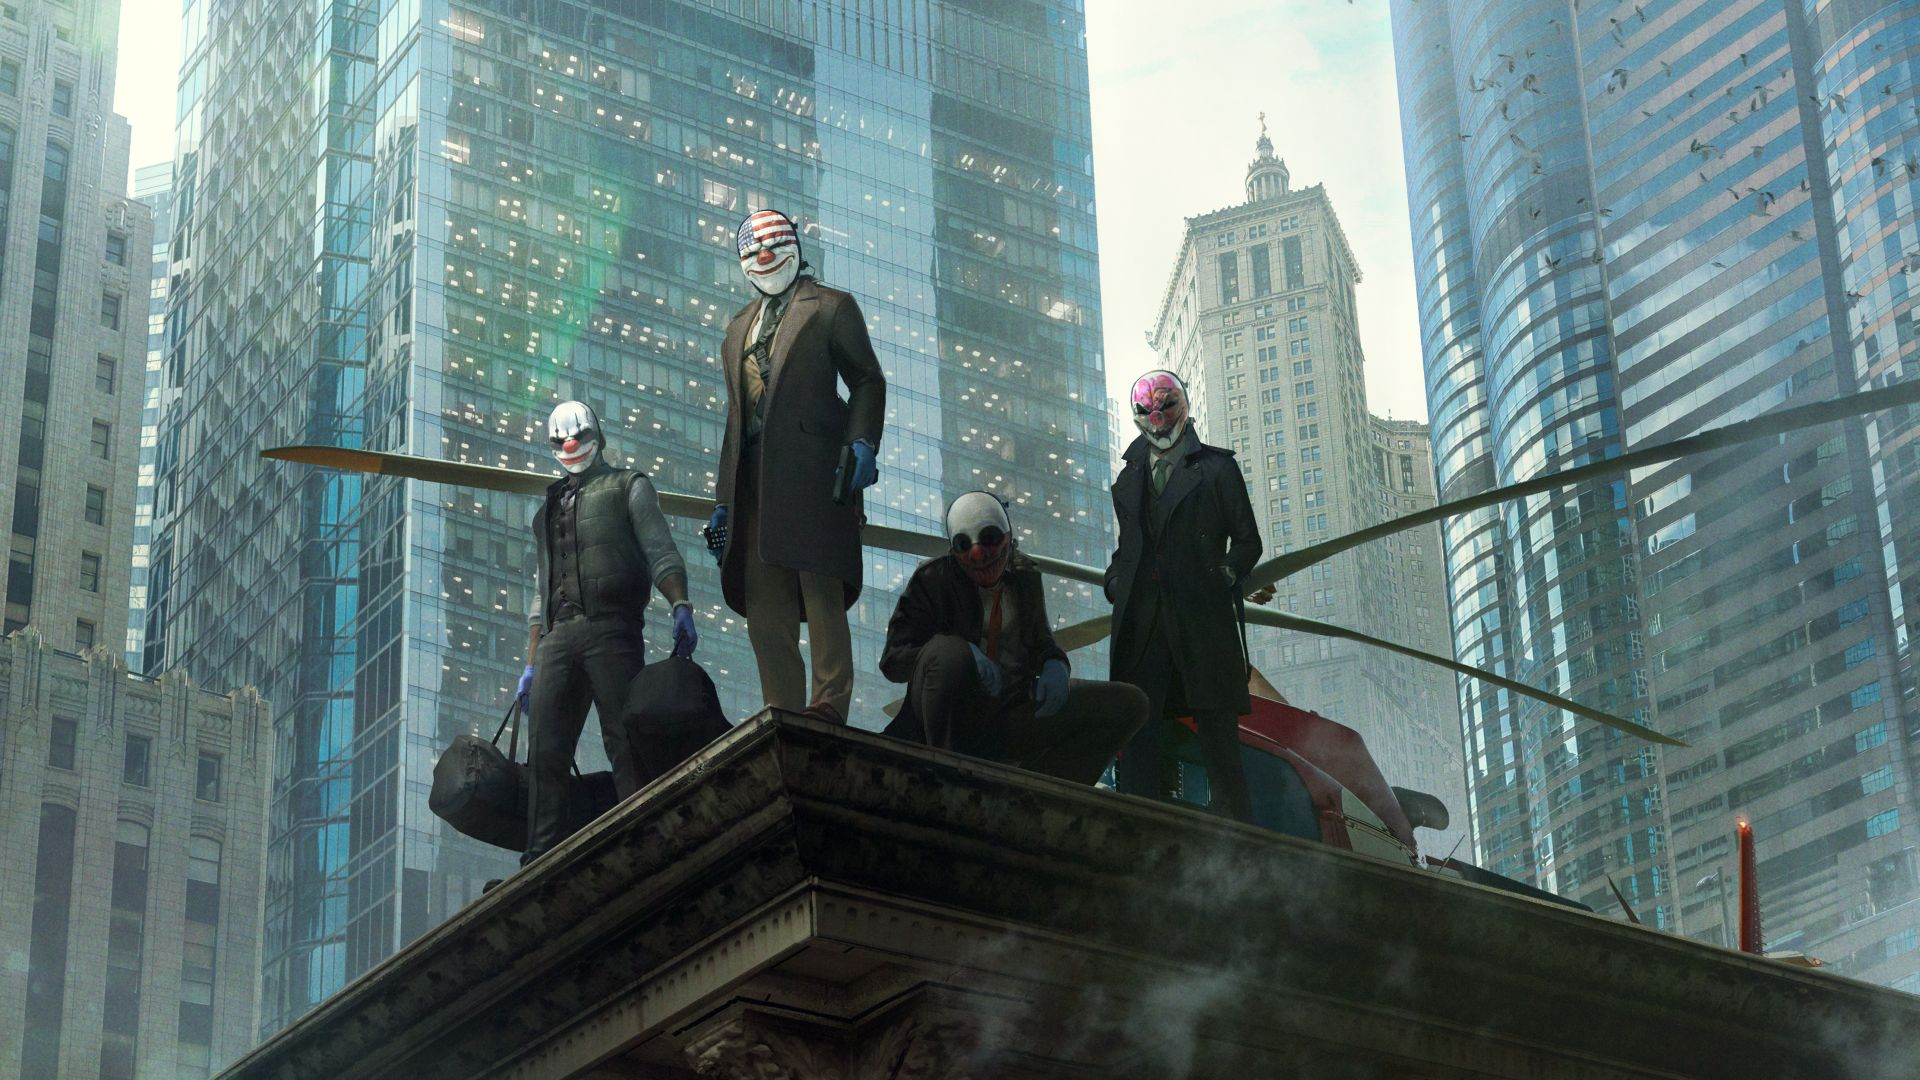 Payday 3 devs reveal new details about the upcoming co-op shooter